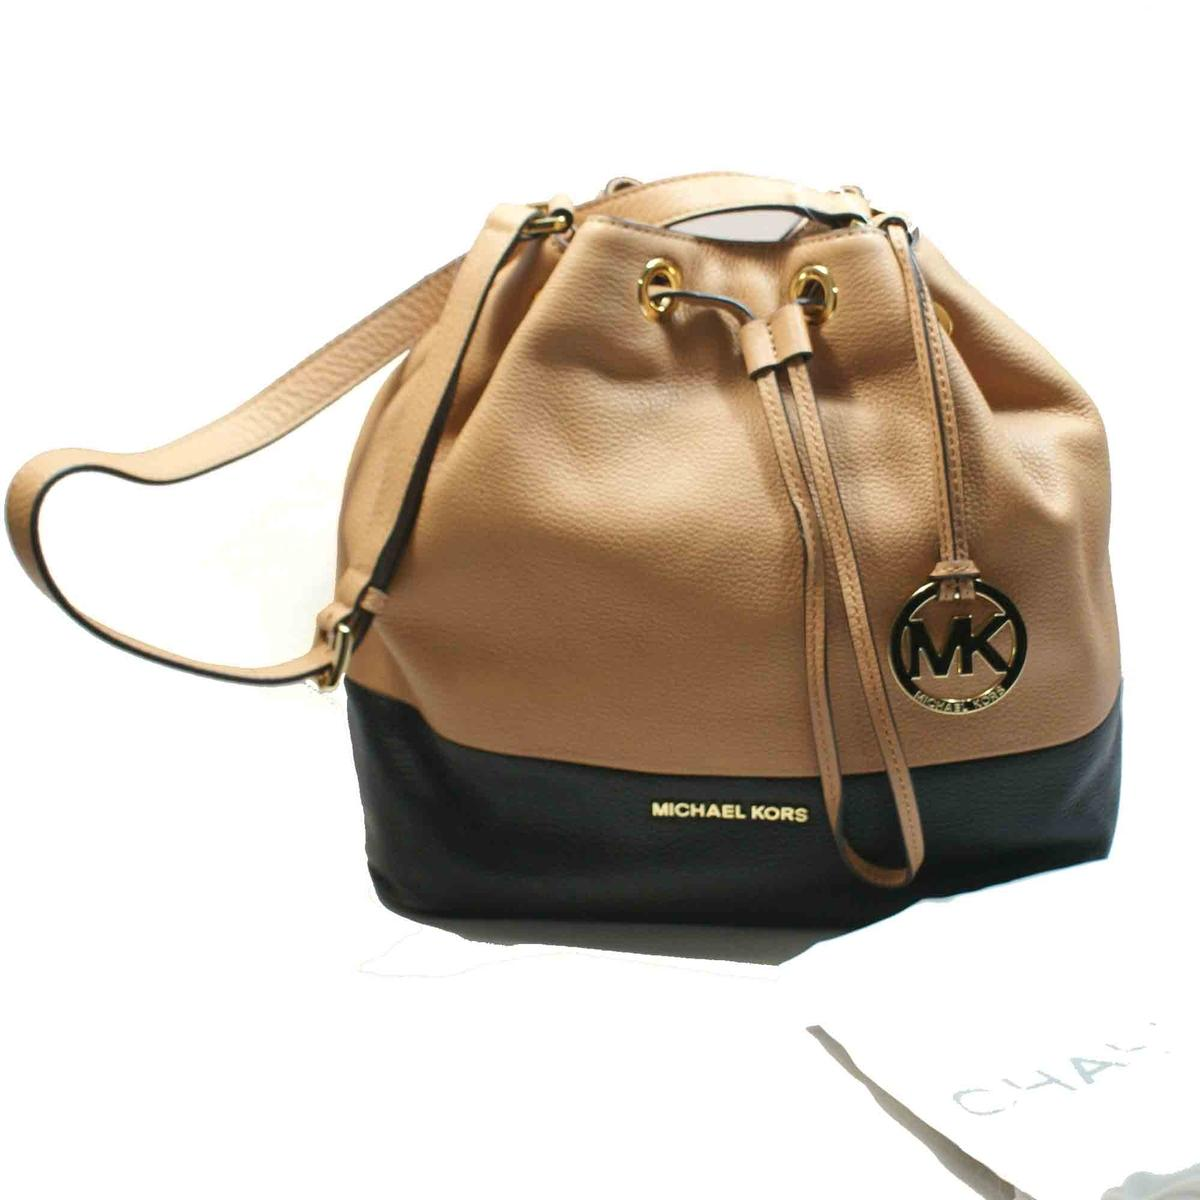 Michael Kors Handbags: Find totes, satchels, and more from choreadz.ml Your Online Clothing & Shoes Store! Get 5% in rewards with Club O!